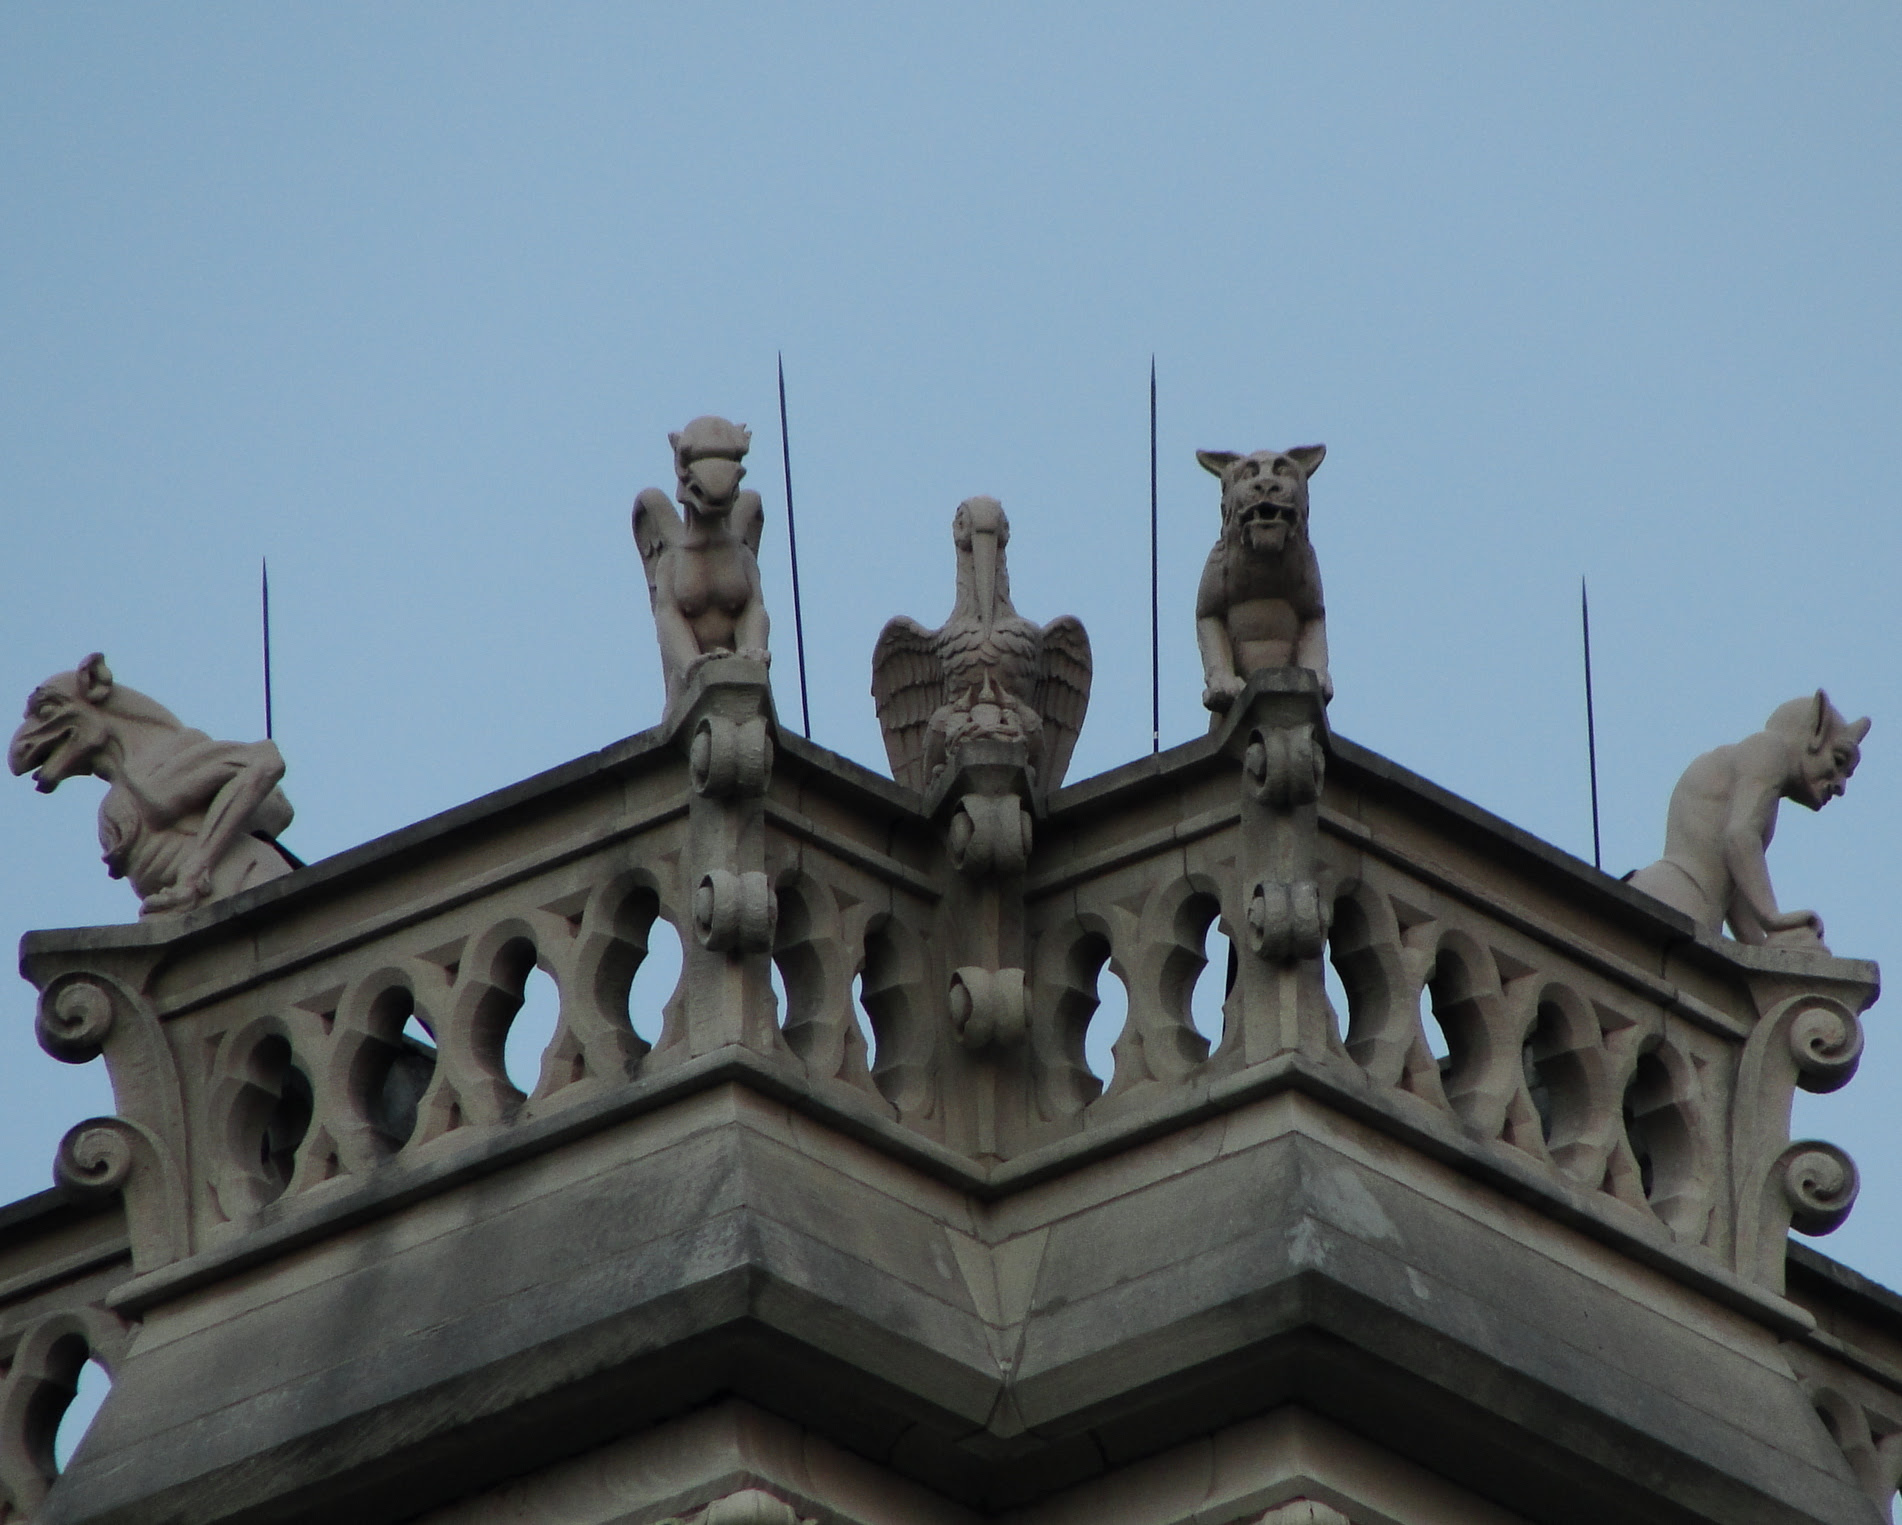 gargoyles atop The Cathedral Basilica of the Assumption in Covington, KY.  Twenty-six gargoyles to be exact, all carved in Italy